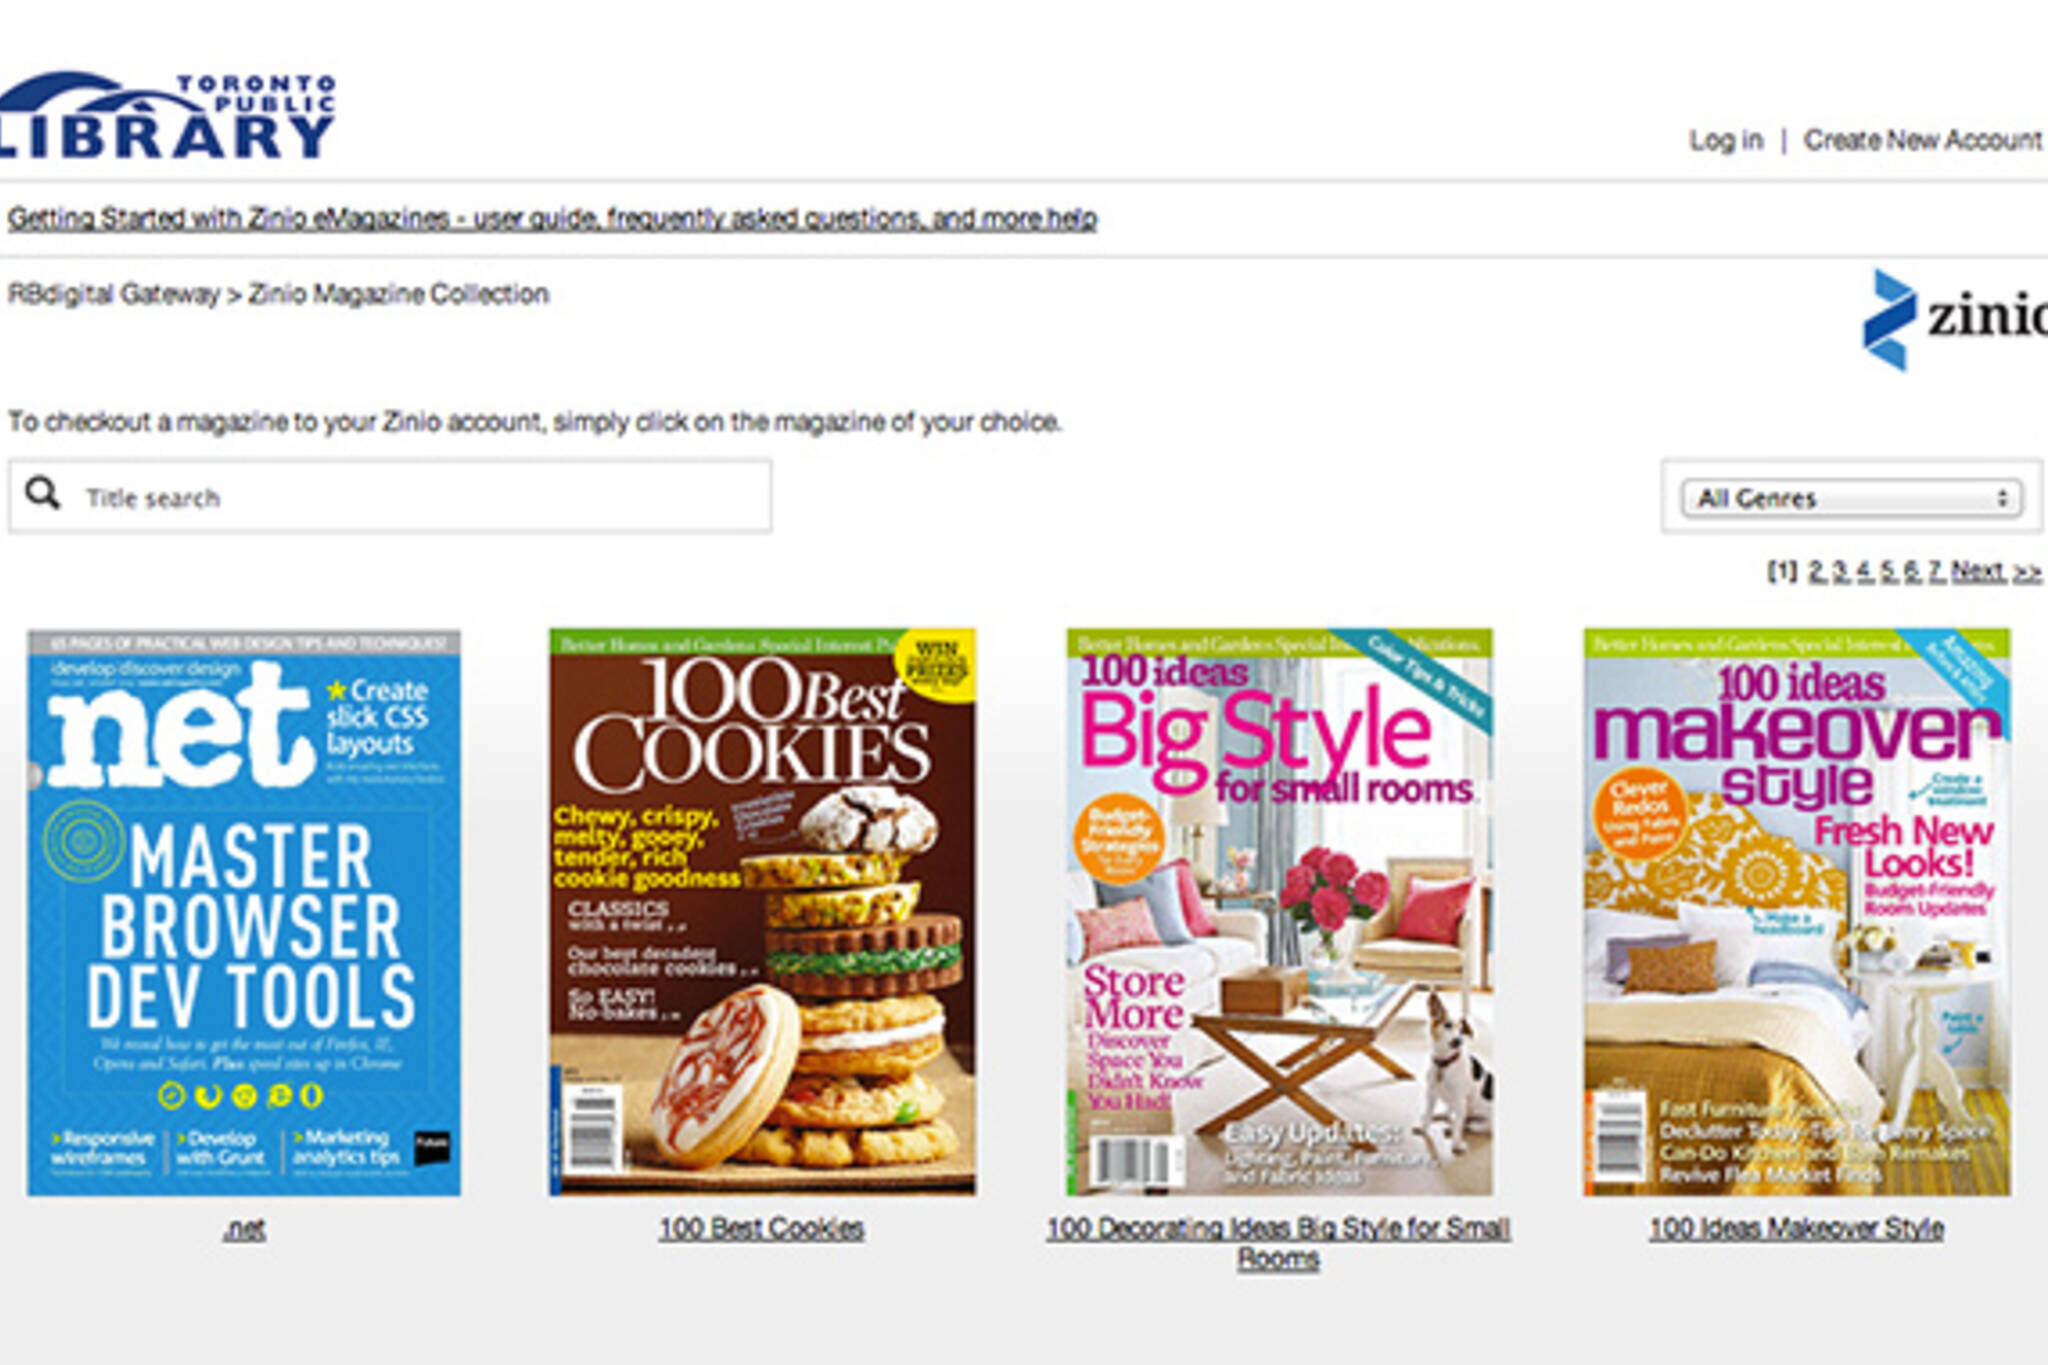 Toronto Public Library Digital Magazines